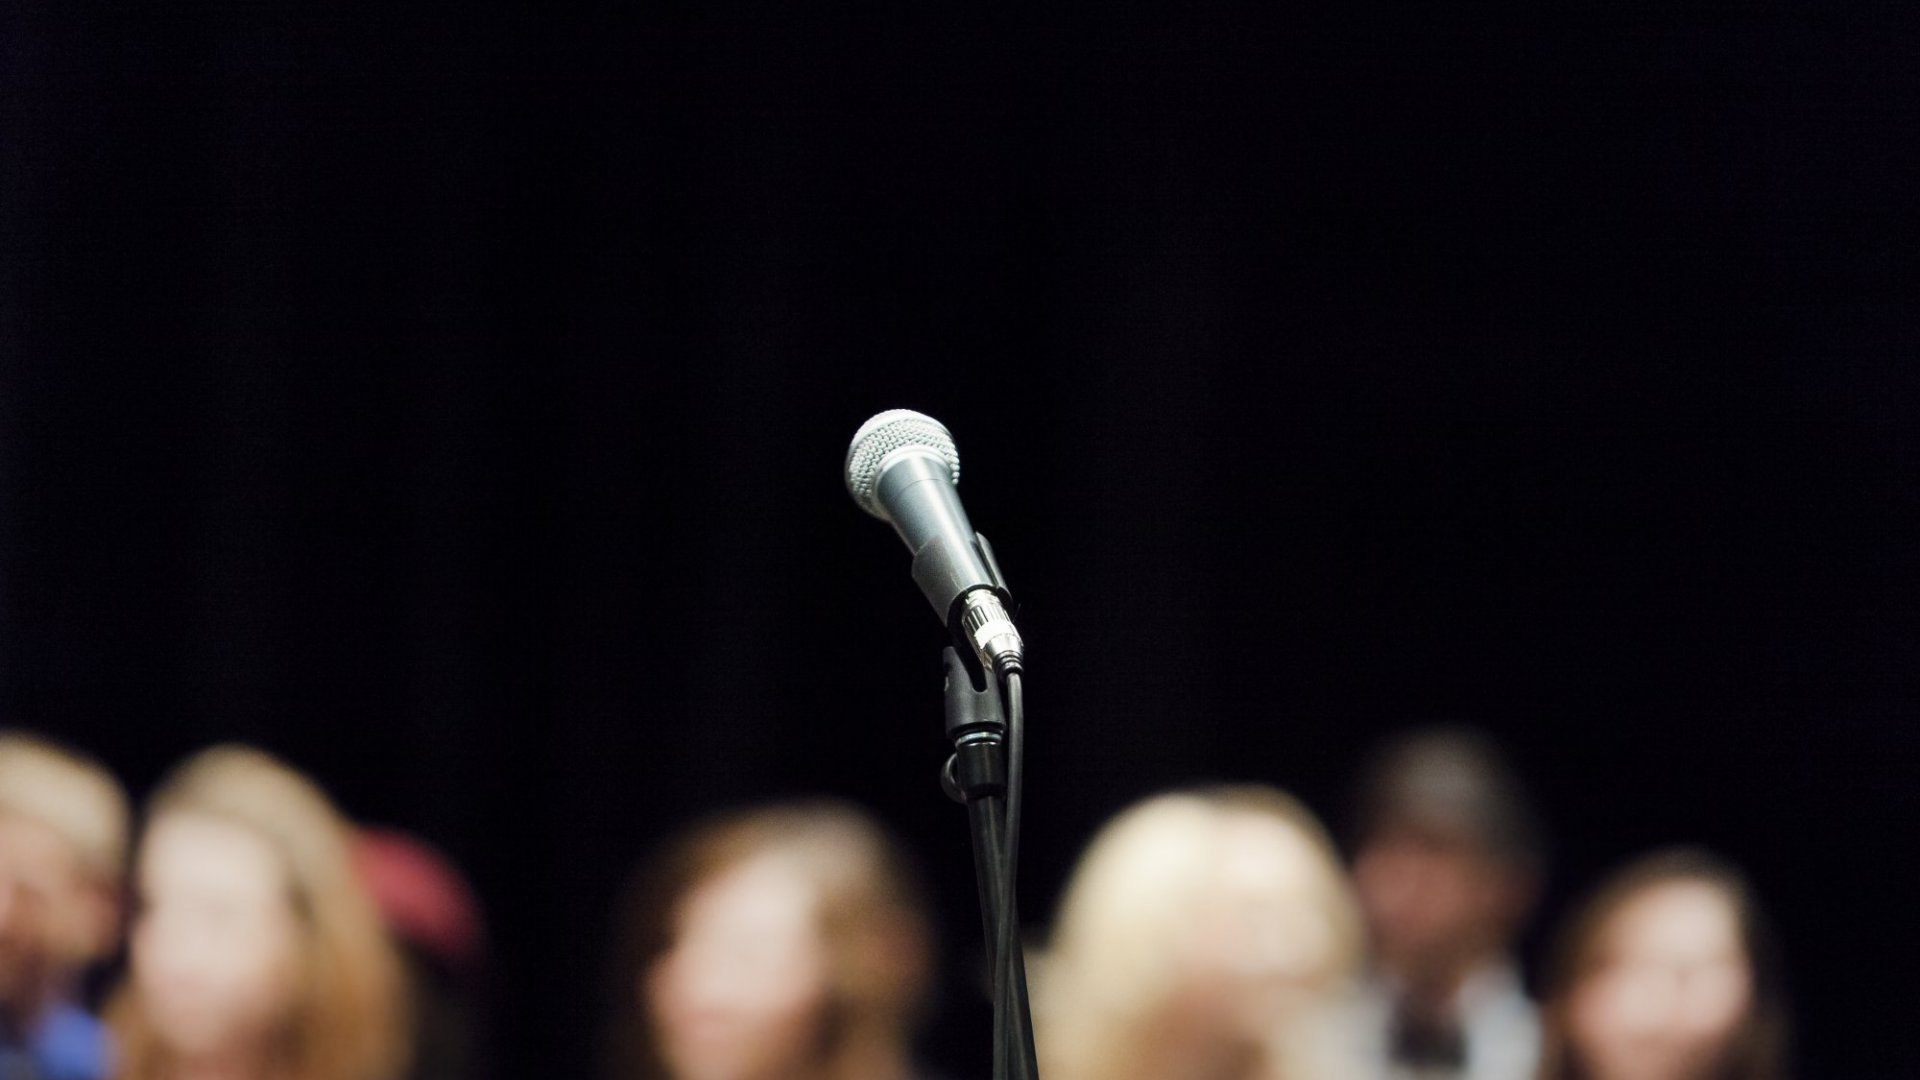 TED Tackles Stage Fright: How 3 Notable Speakers Overcame Their Fear of Public Speaking